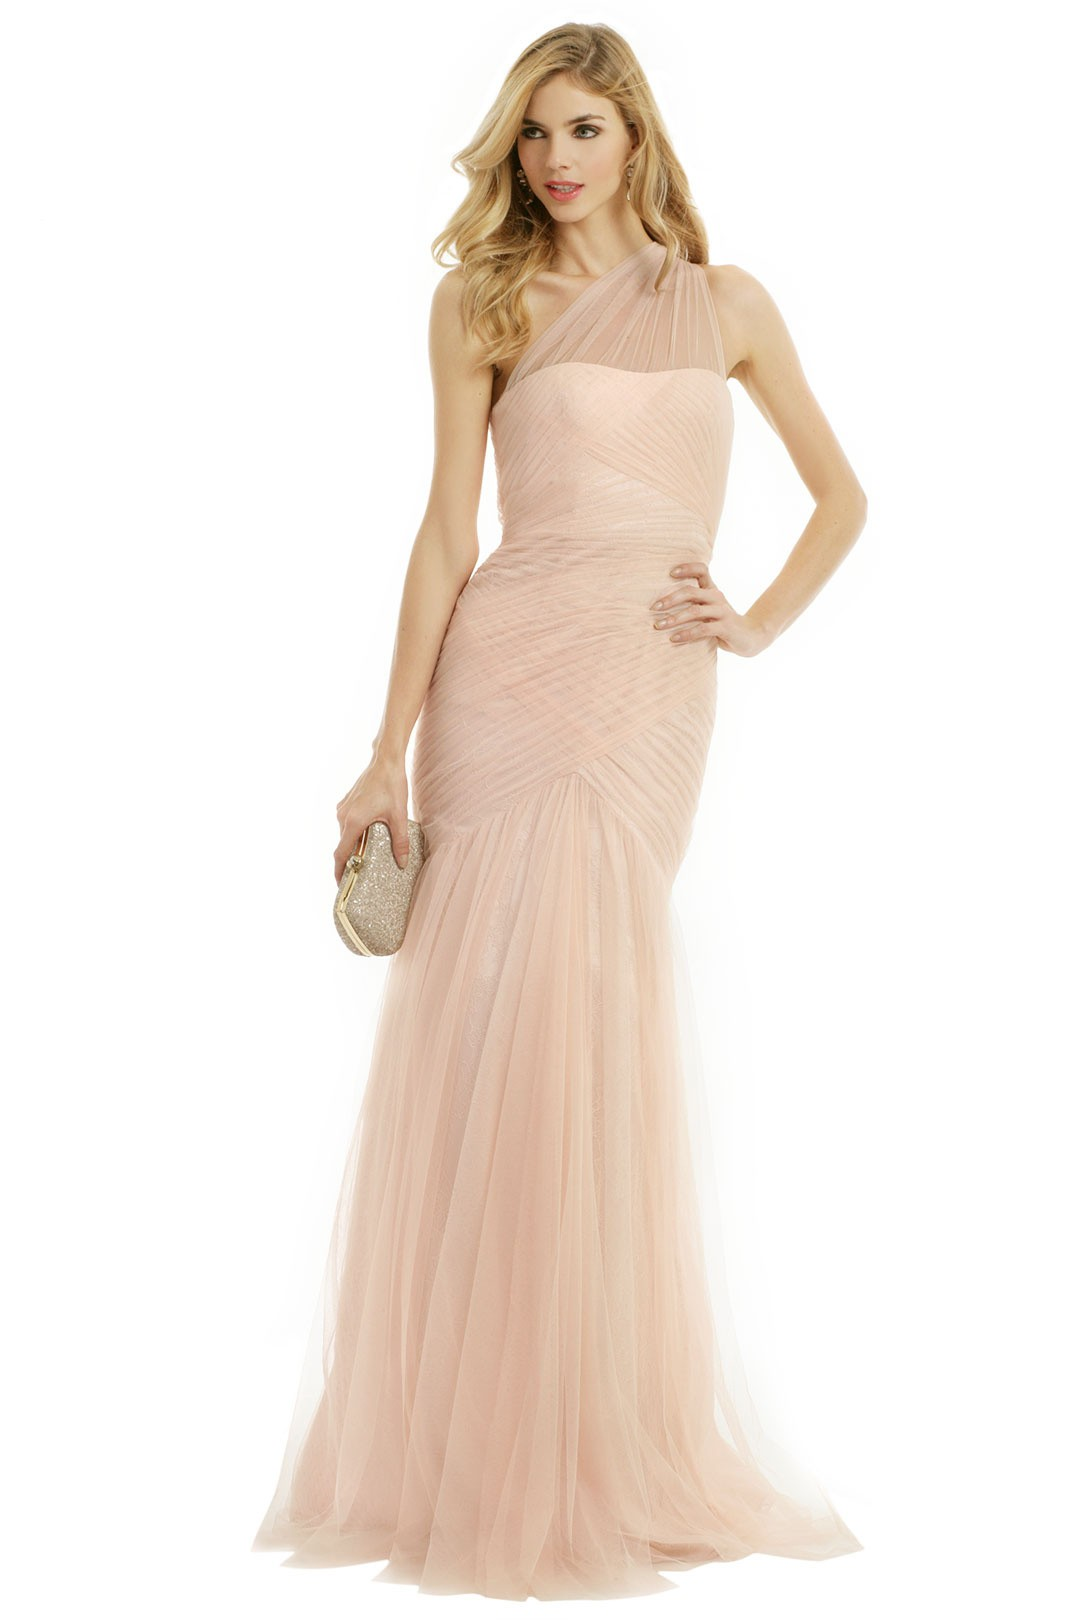 Bridesmaid dresses and accessories beautiful blush bridesmaid dresses ombrellifo Images